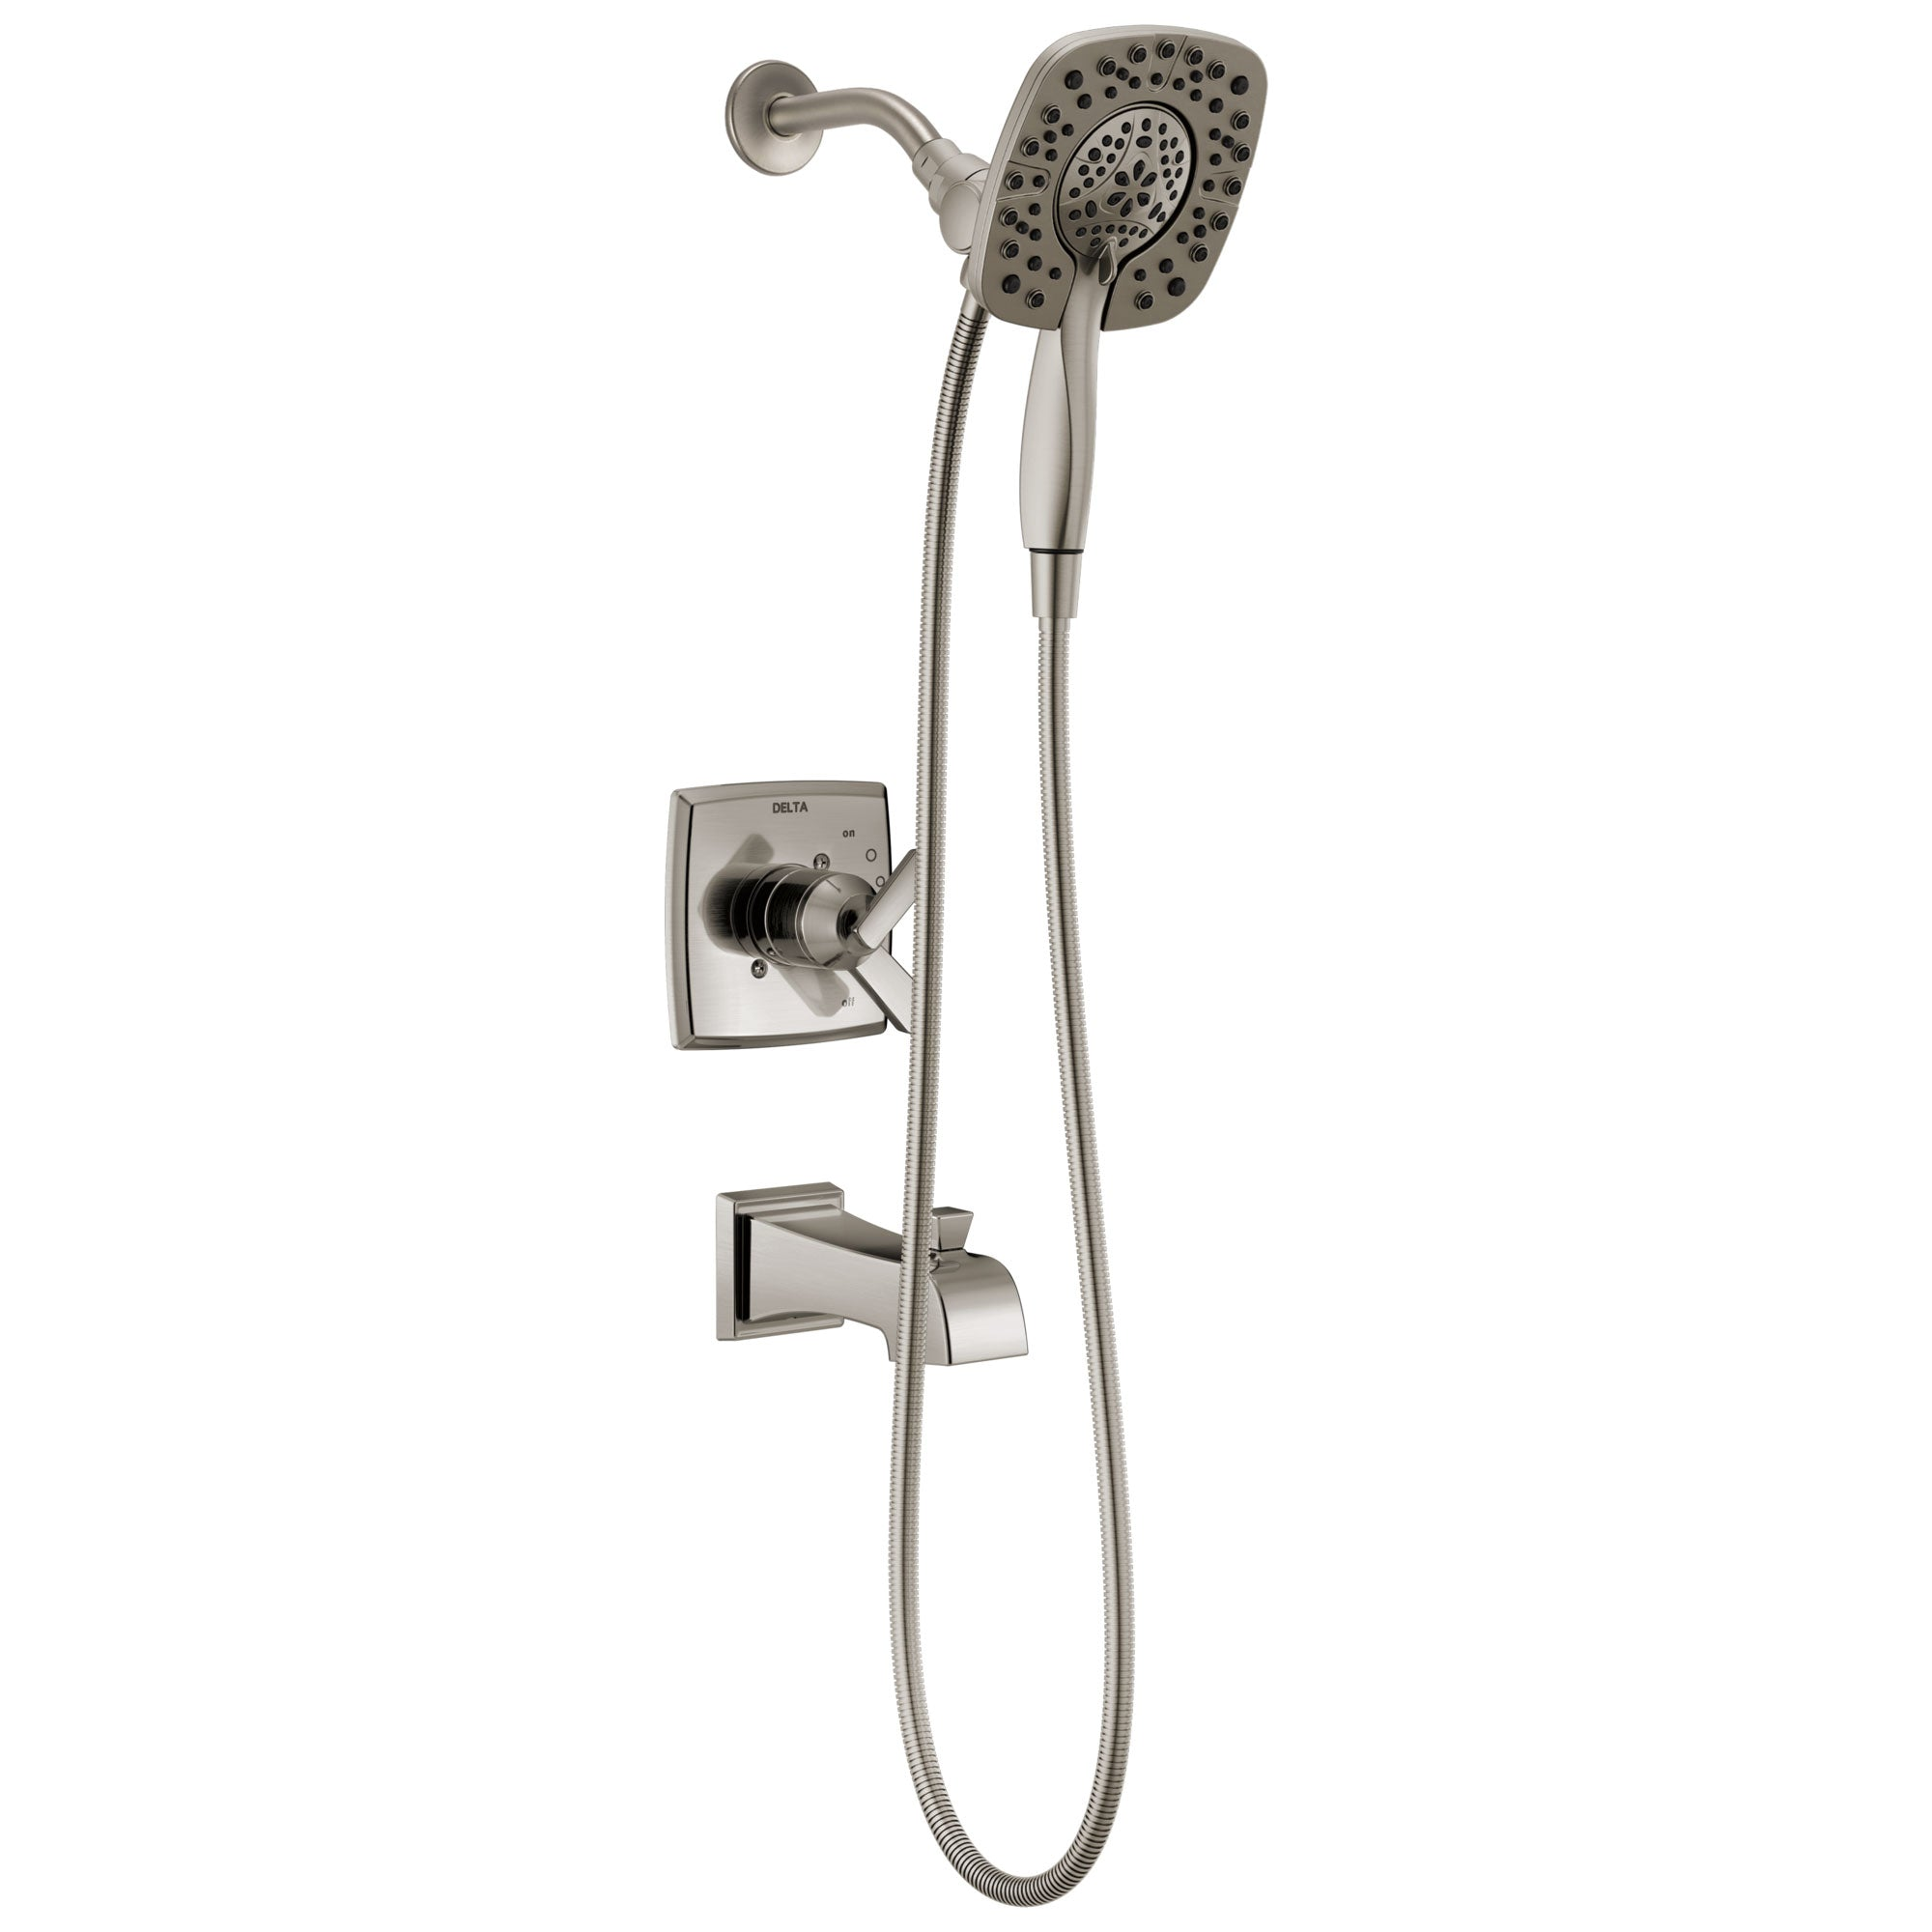 Delta Ashlyn Stainless Steel Finish Monitor 17 Series Tub and Shower Combo Faucet with In2ition Two-in-One Hand Shower Spray INCLUDES Rough-in Valve with Stops D1115V